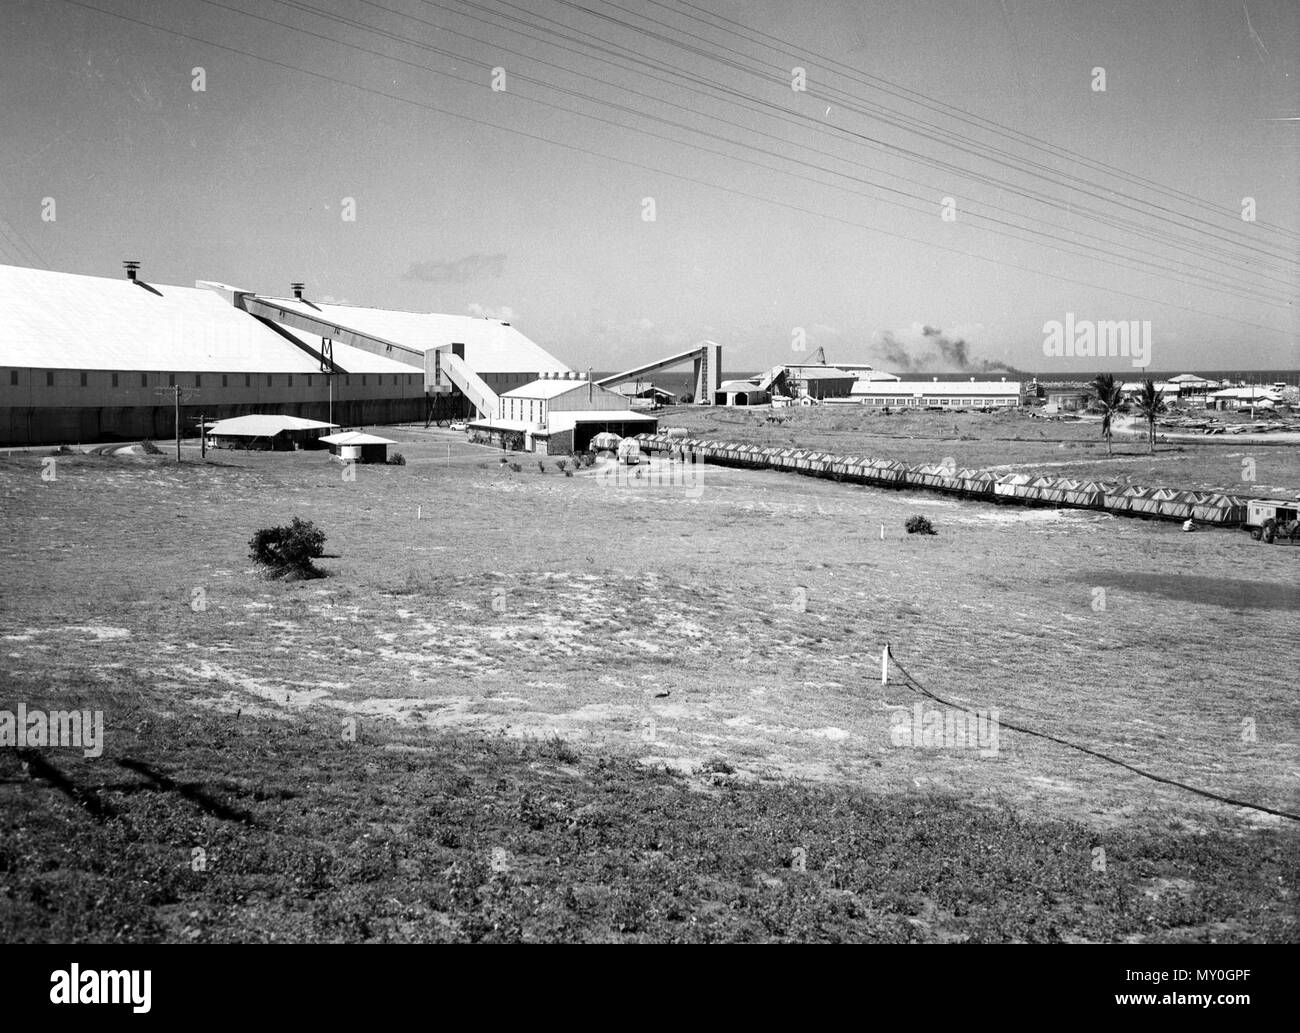 Bulk Sugar Terminal, Mackay, October 1960. Mackay Bulk Sugar Terminal opened in 1957. At the time it was the largest shed for storing sugar anywhere in the world. - Stock Image